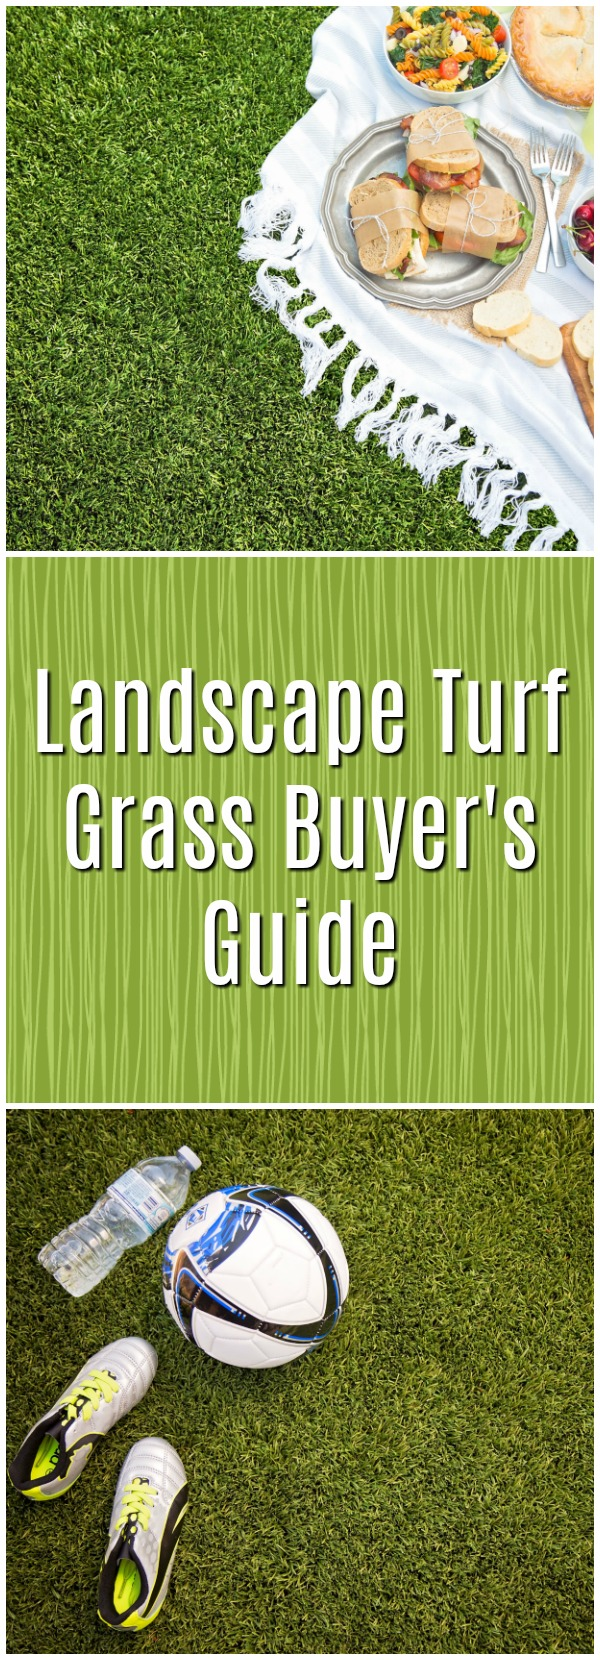 Artificial turf grass is the perfect way to have a maintenance-free lawn. Our landscape turf grass stays green for enjoyment for years to come.